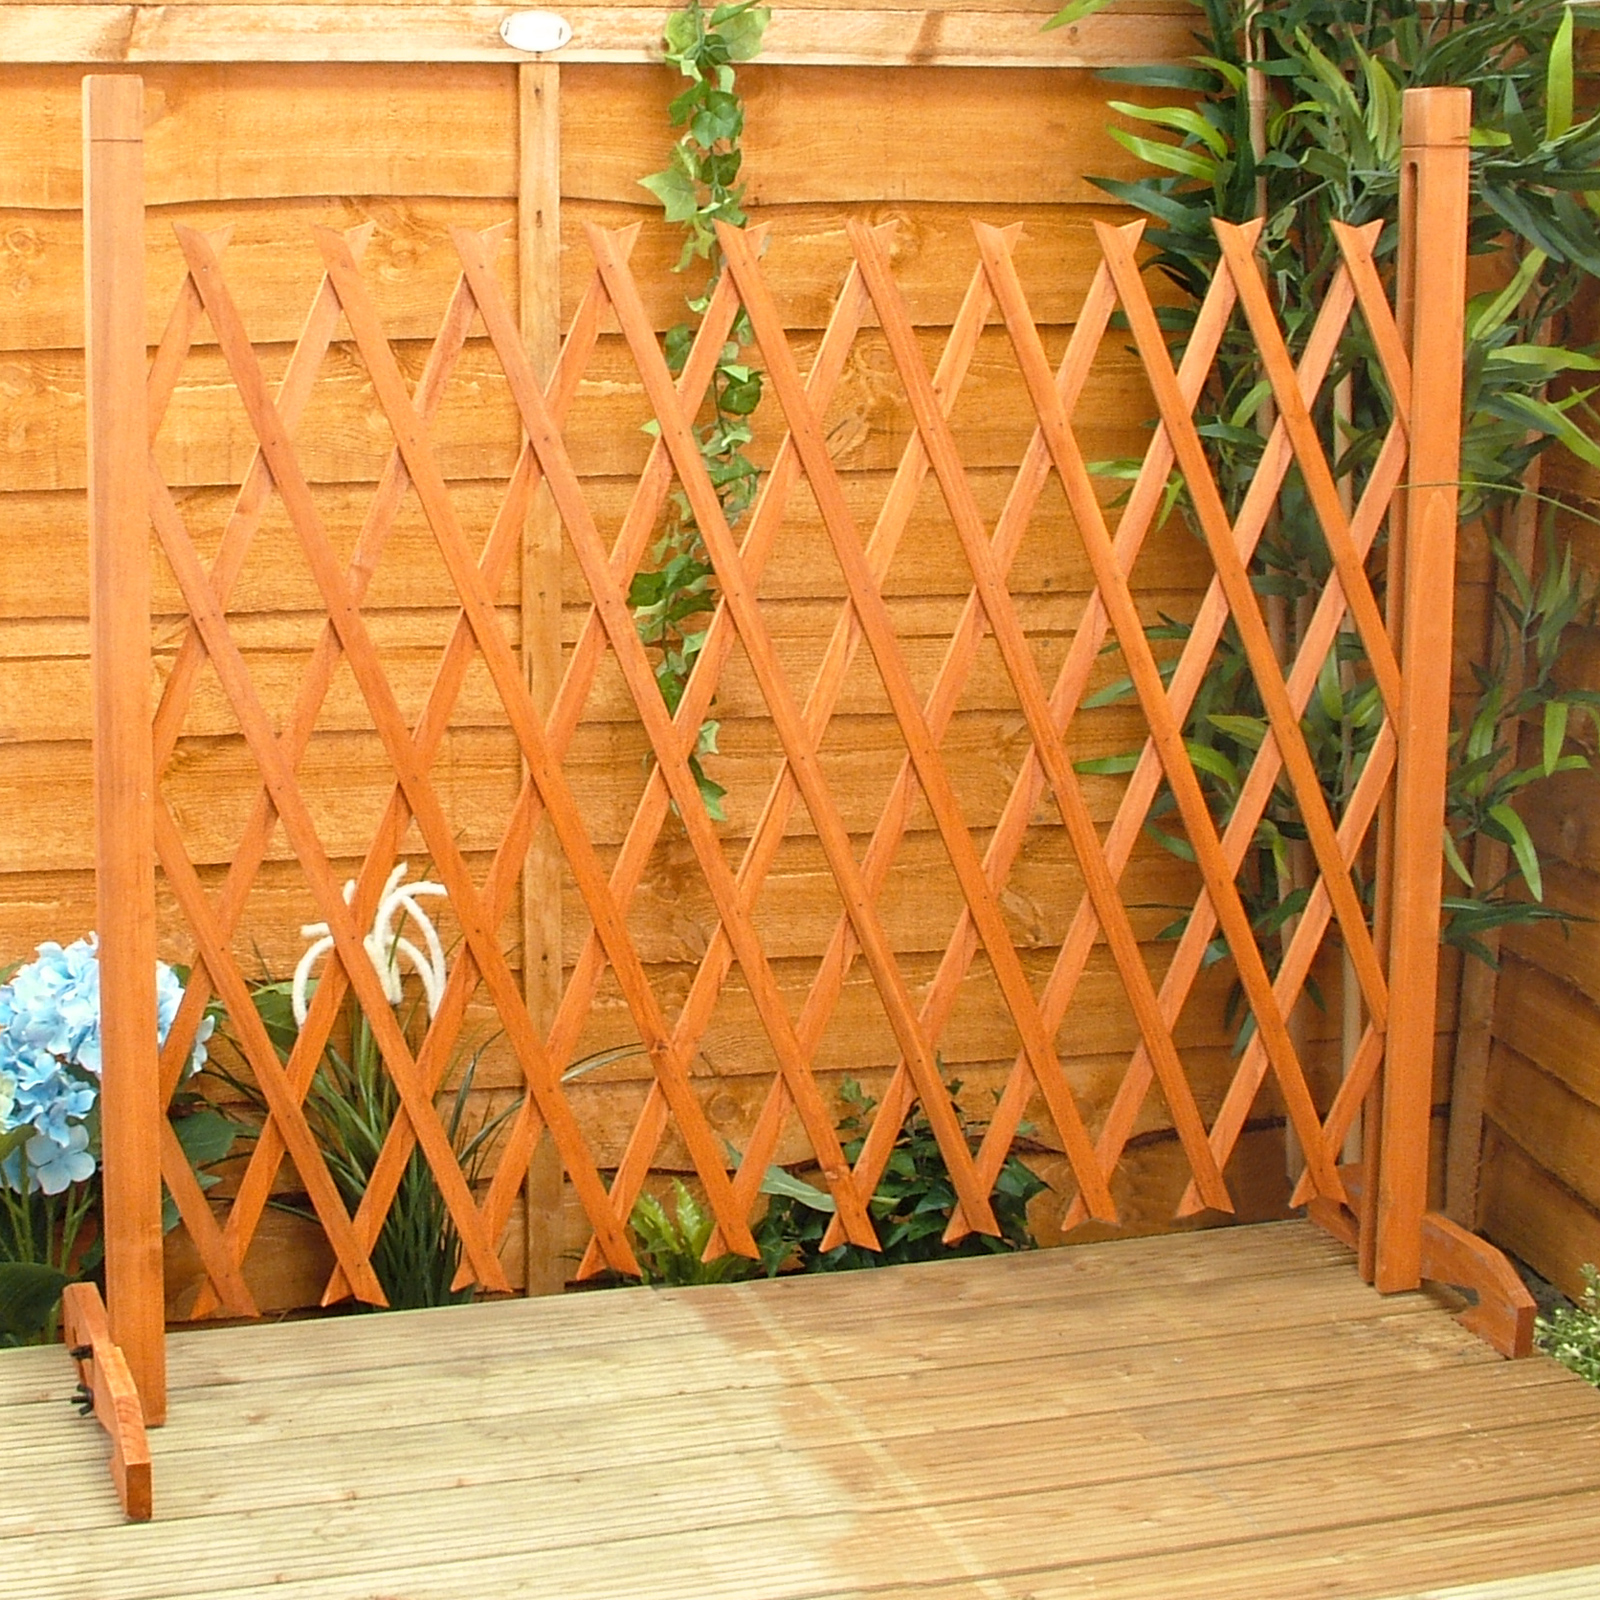 Wooden Expanding Fencing720 1596 Source · Expanding Fence Garden Screen  Trellis Style Expands To 6 2